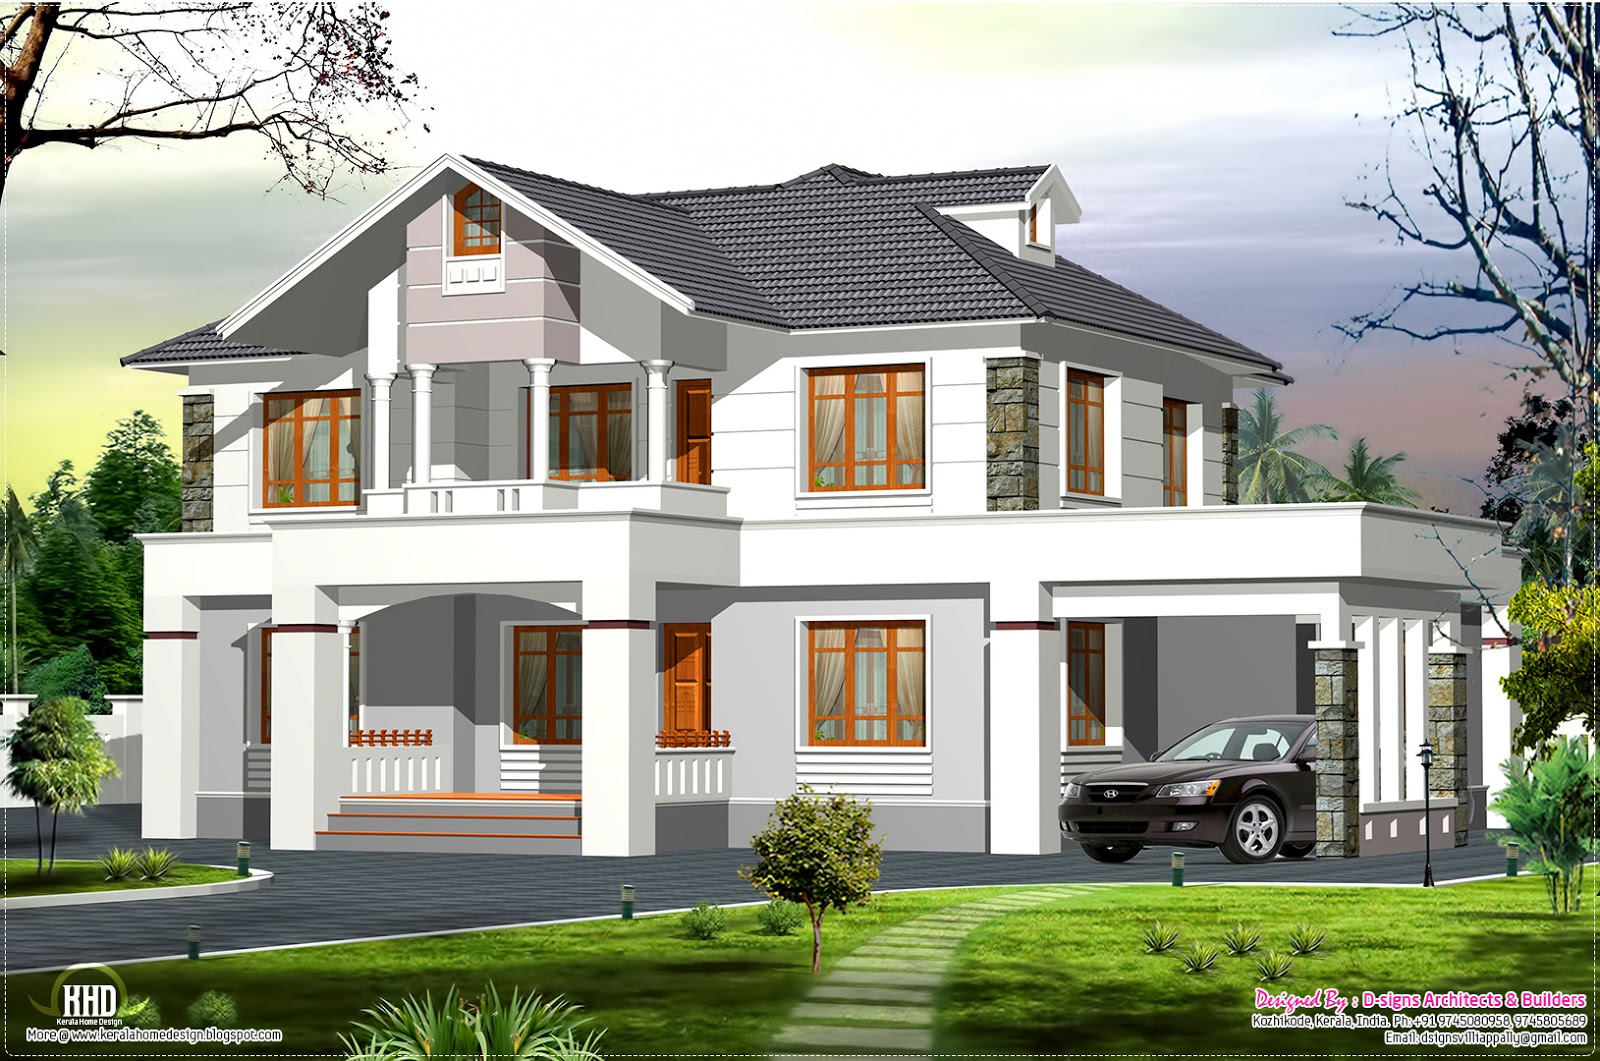 2400 sq.feet Western style home in Kerala - Kerala home design and ...